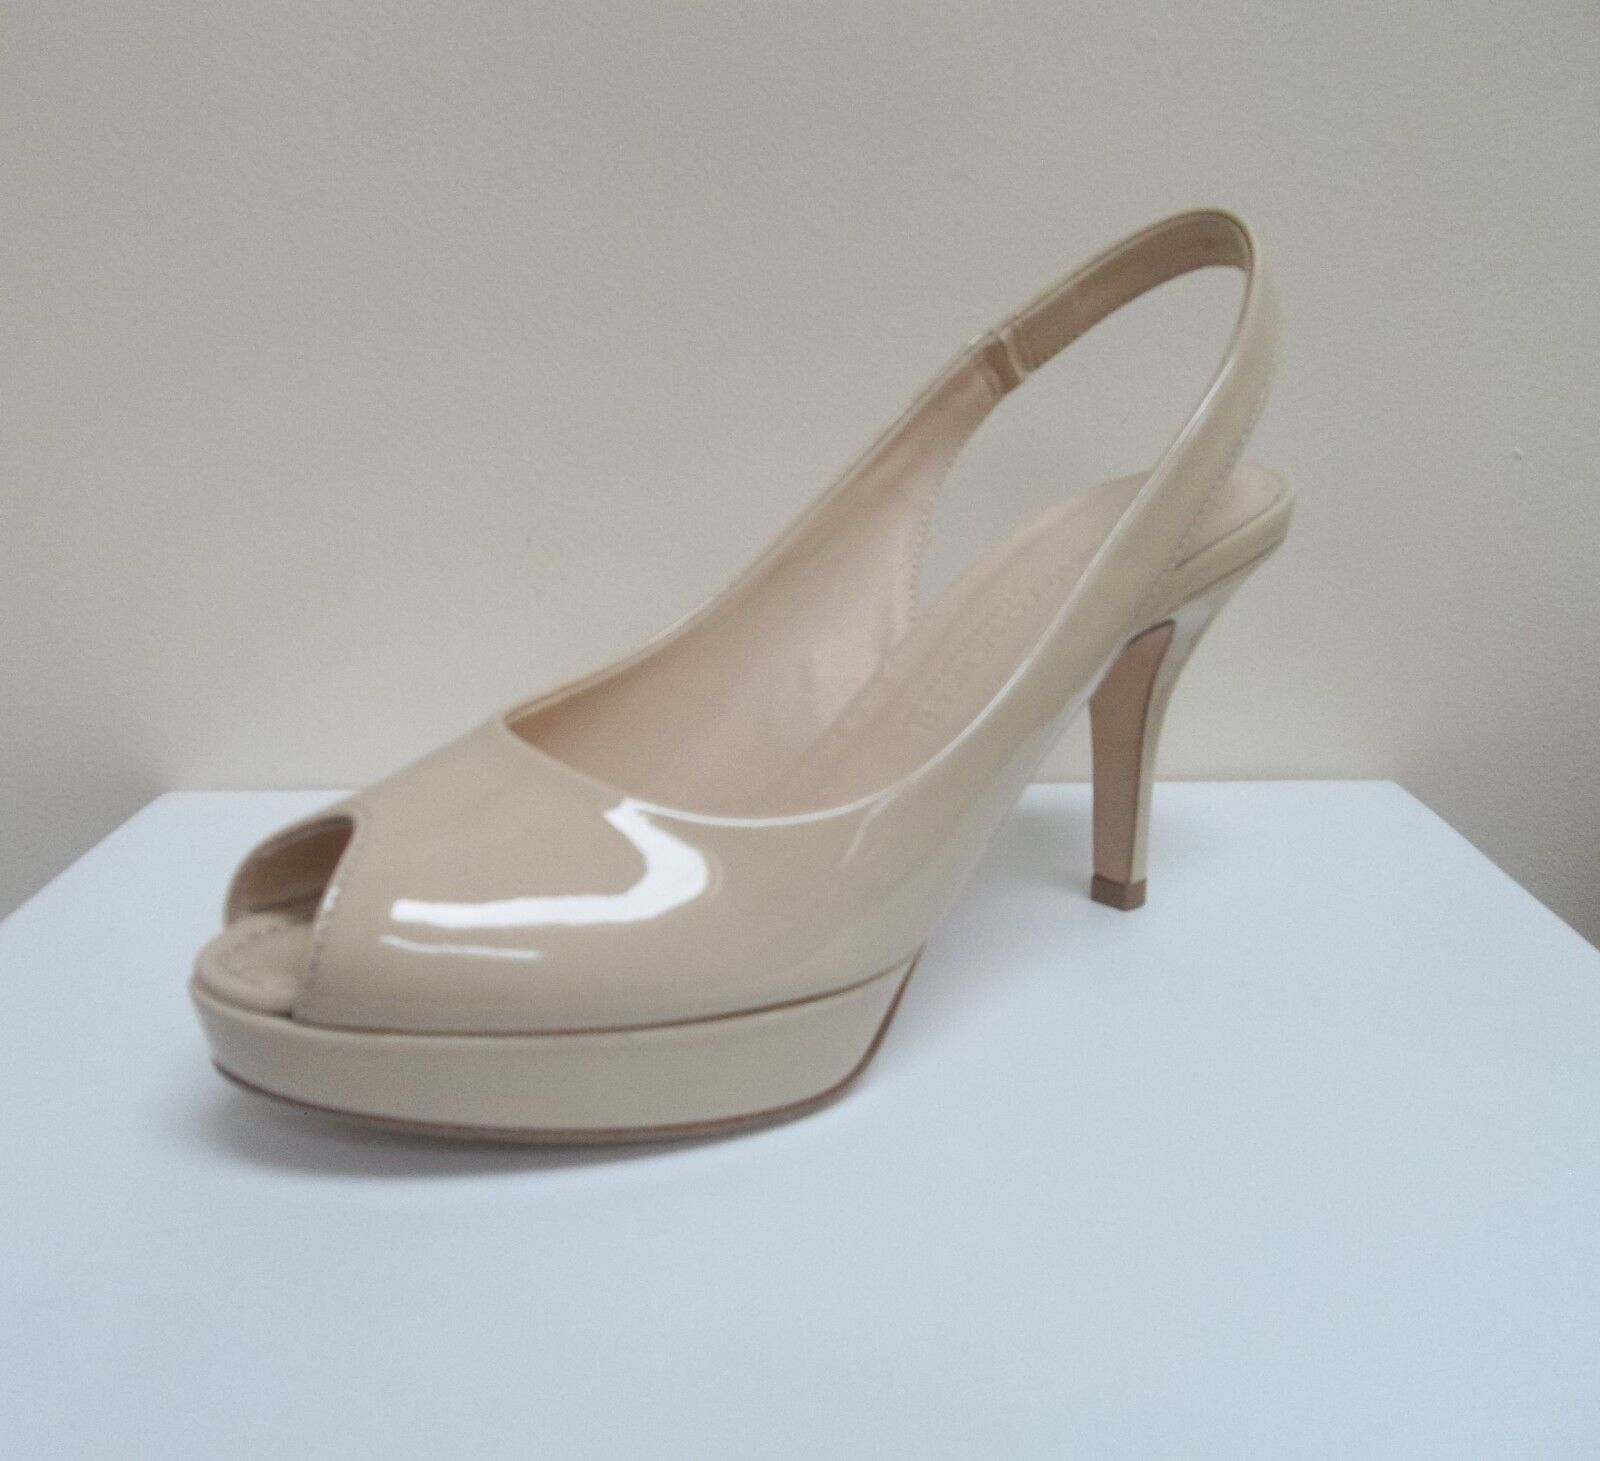 K&S Rose nude patent peep toe platform slingbacks,UK BNWB 4.5/EU 37.5,   BNWB slingbacks,UK 6f07d9